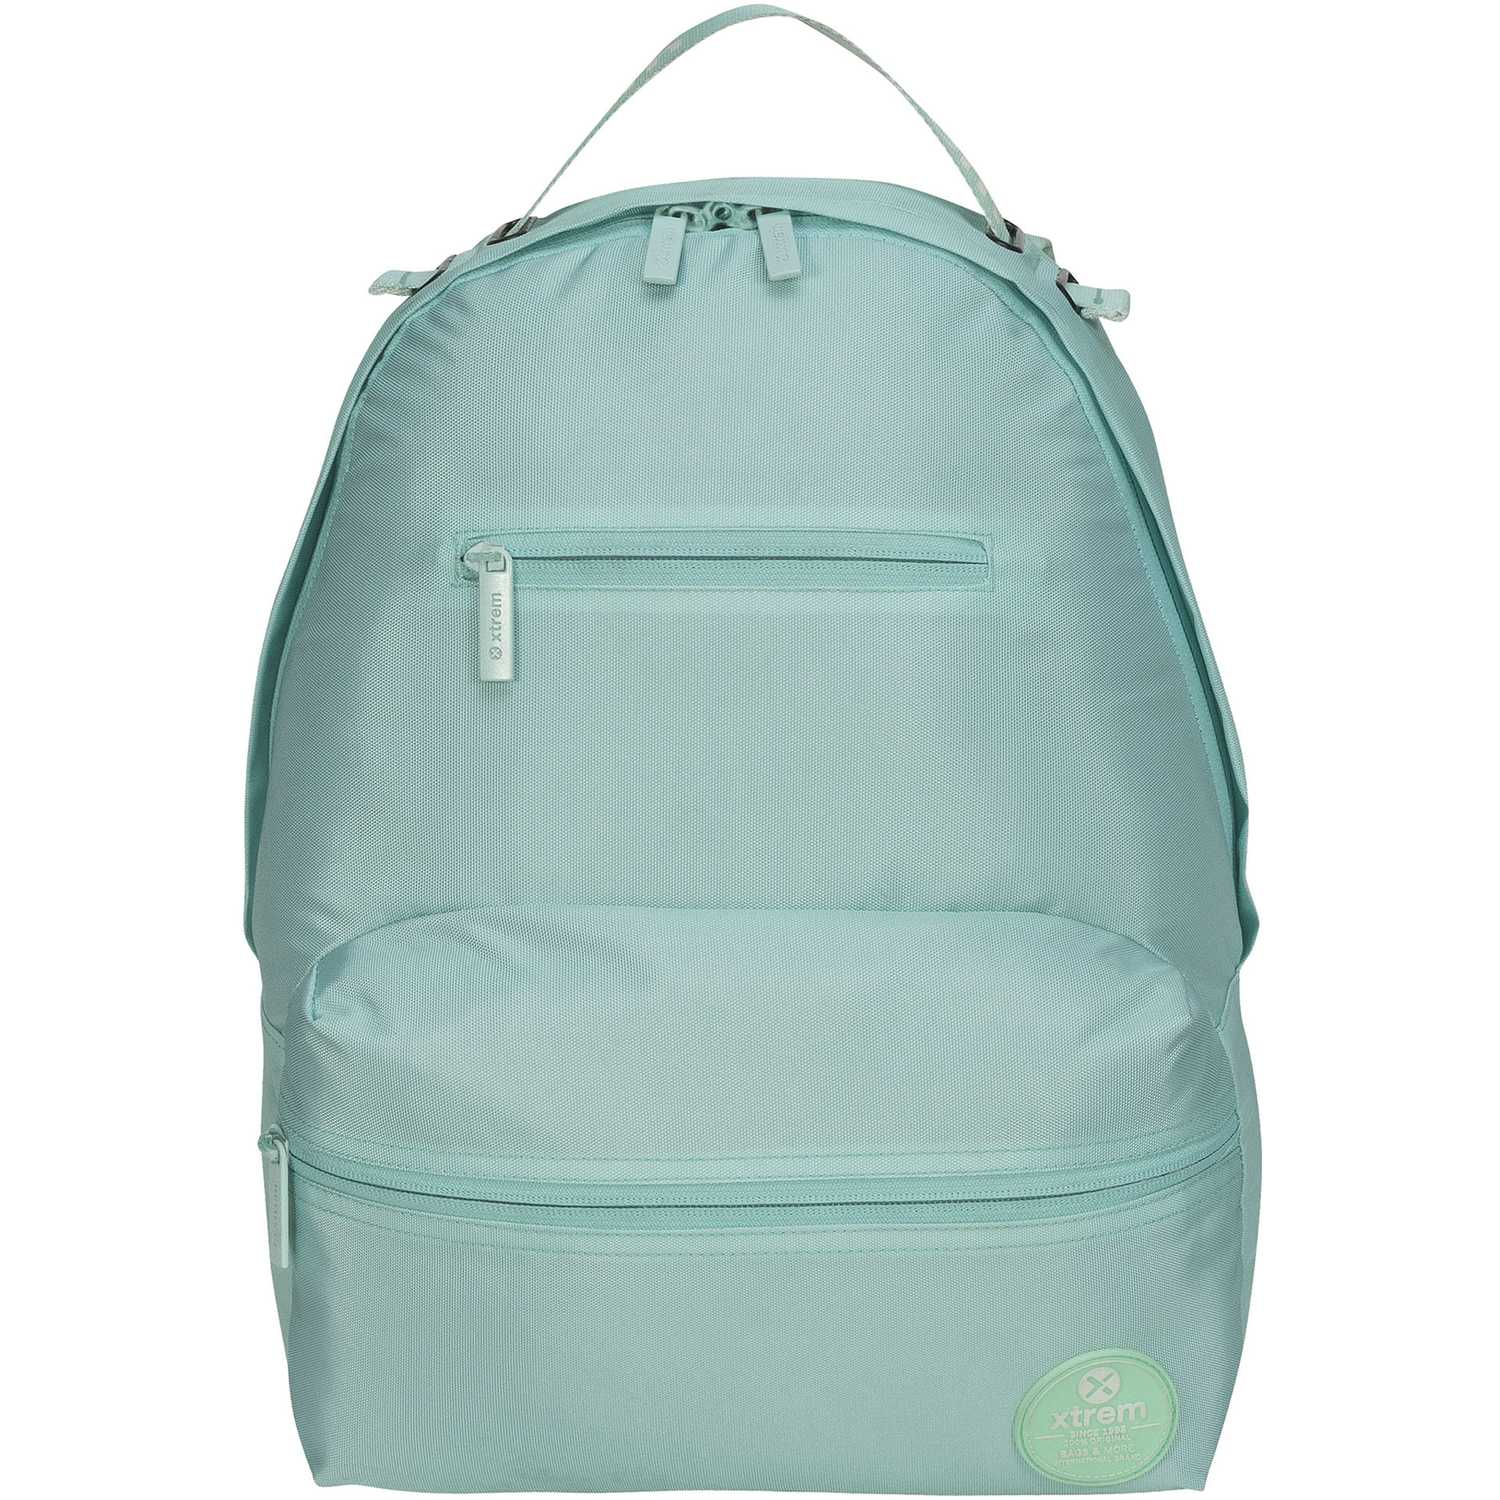 Mochila de Niña Xtrem Menta backpack mint paris 821